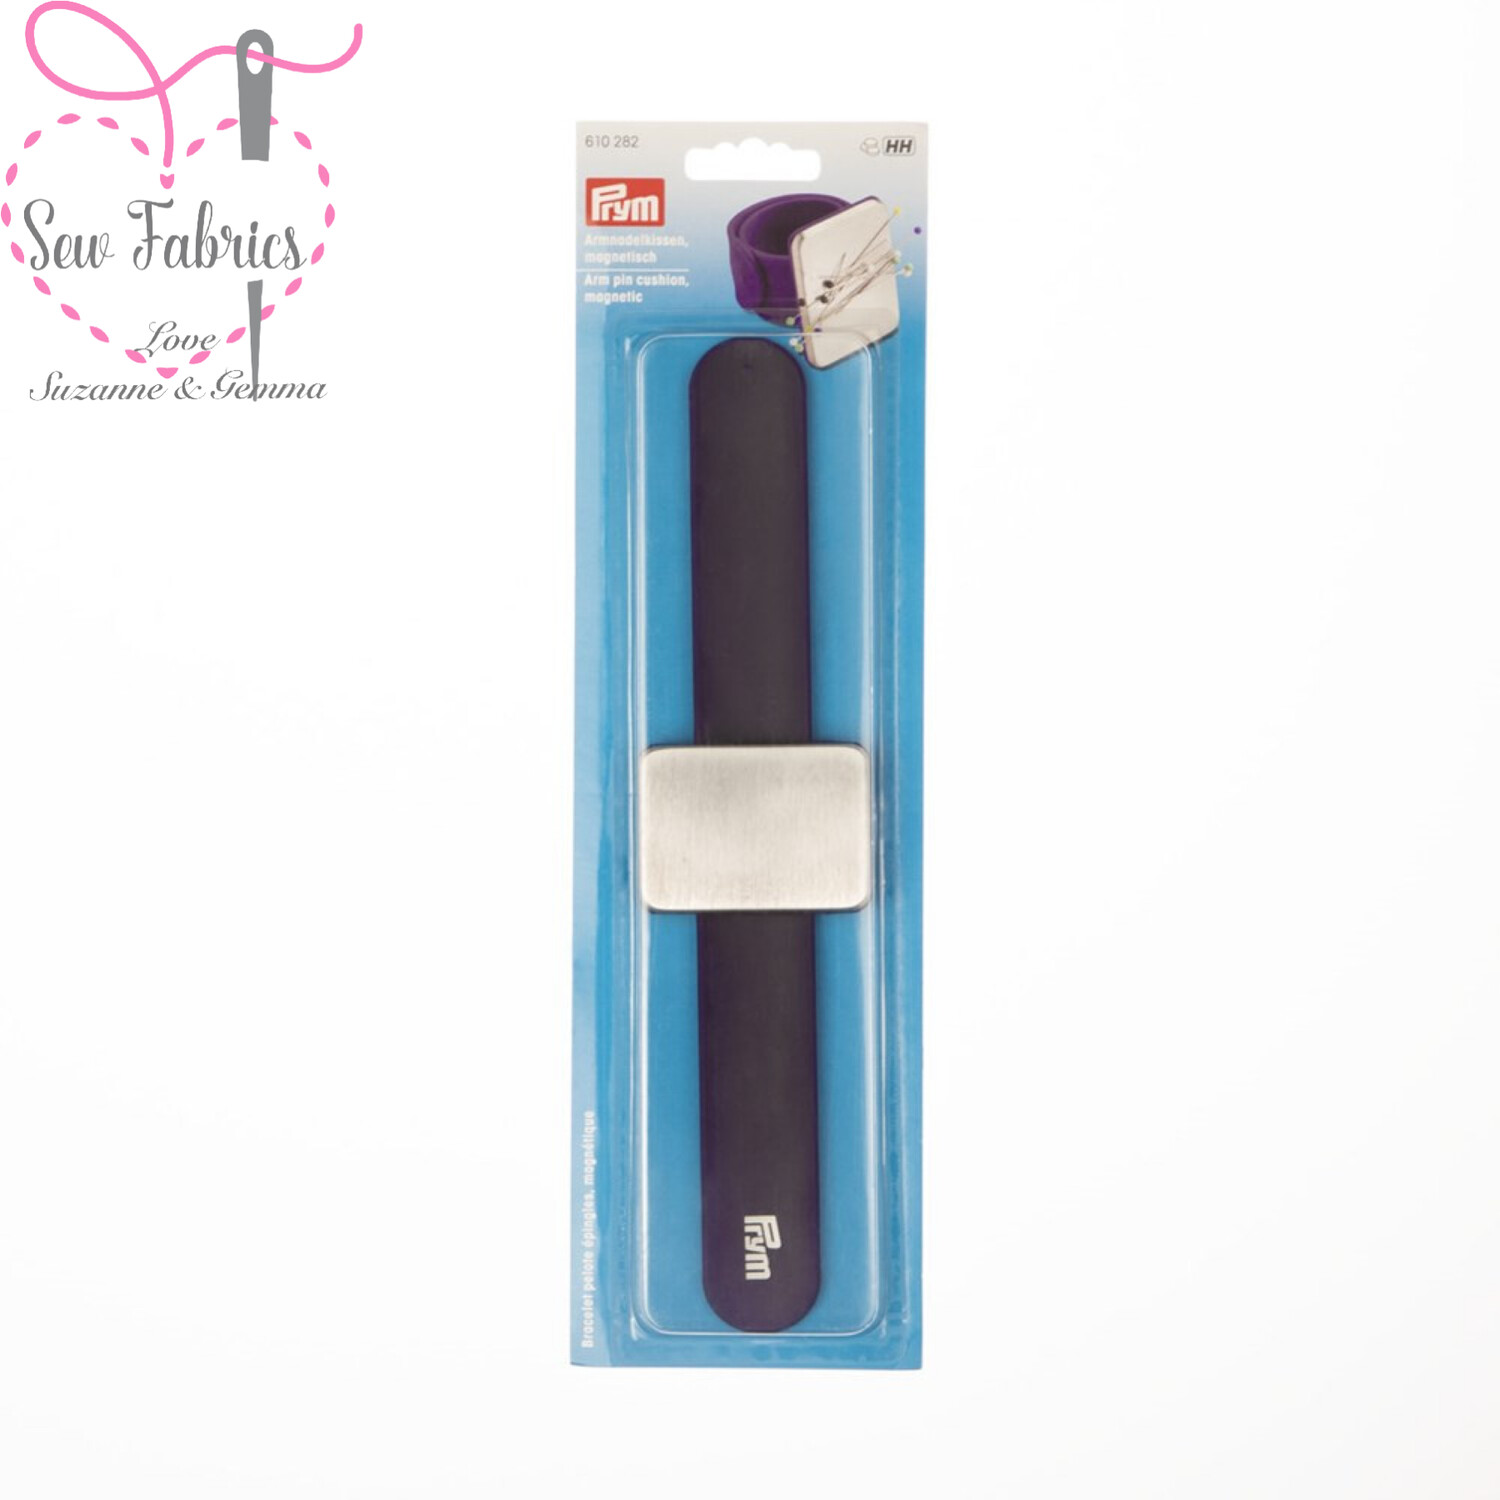 Prym Arm Pin Cushion Silicone Wristband Magnetic Face, Sewing, Dressmaking, Quilting Accessory in Dark Violet